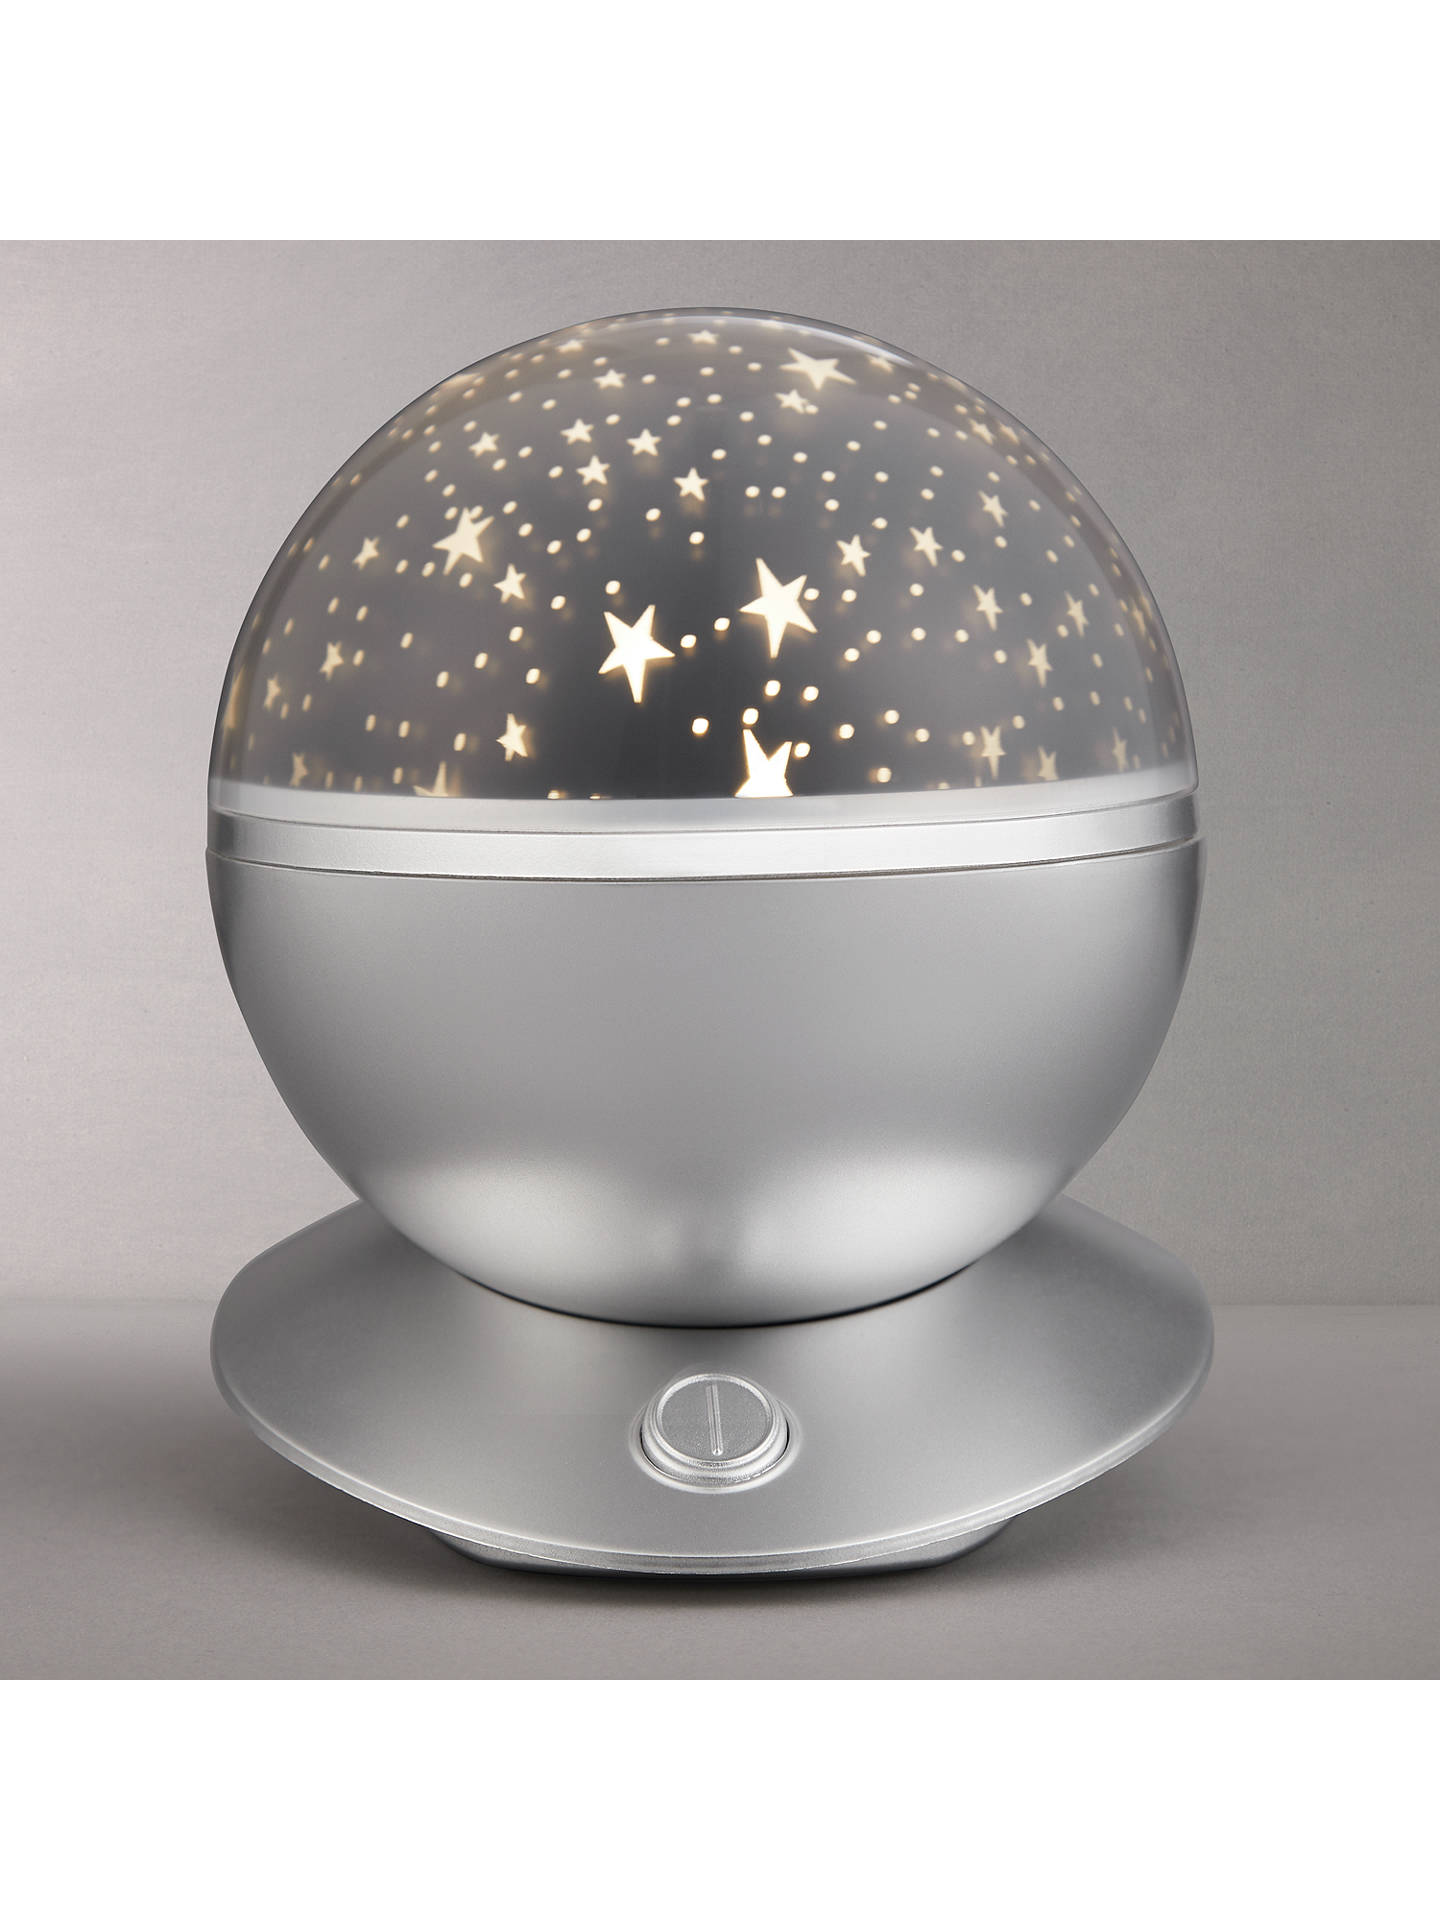 Novelty Led Night Light Table Lamps For Bedroom Sky Star Projector Home Lighting Decor Baby Children Kids Sleeping Bedside Lamps Led Table Lamps